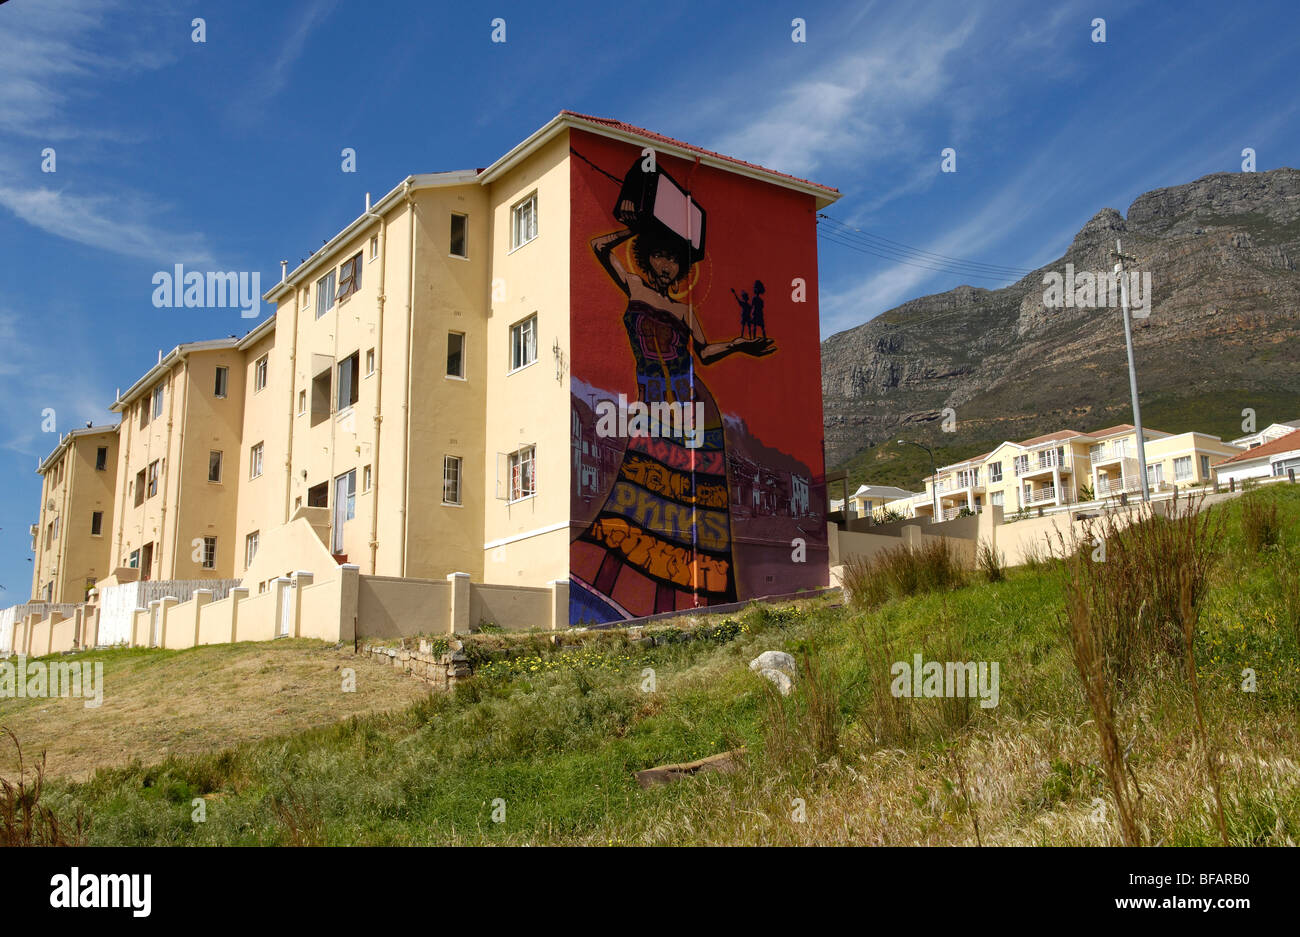 cape town western cape south africa africa flats in district 6 cape town western cape south africa africa flats in district 6 with mural on wall